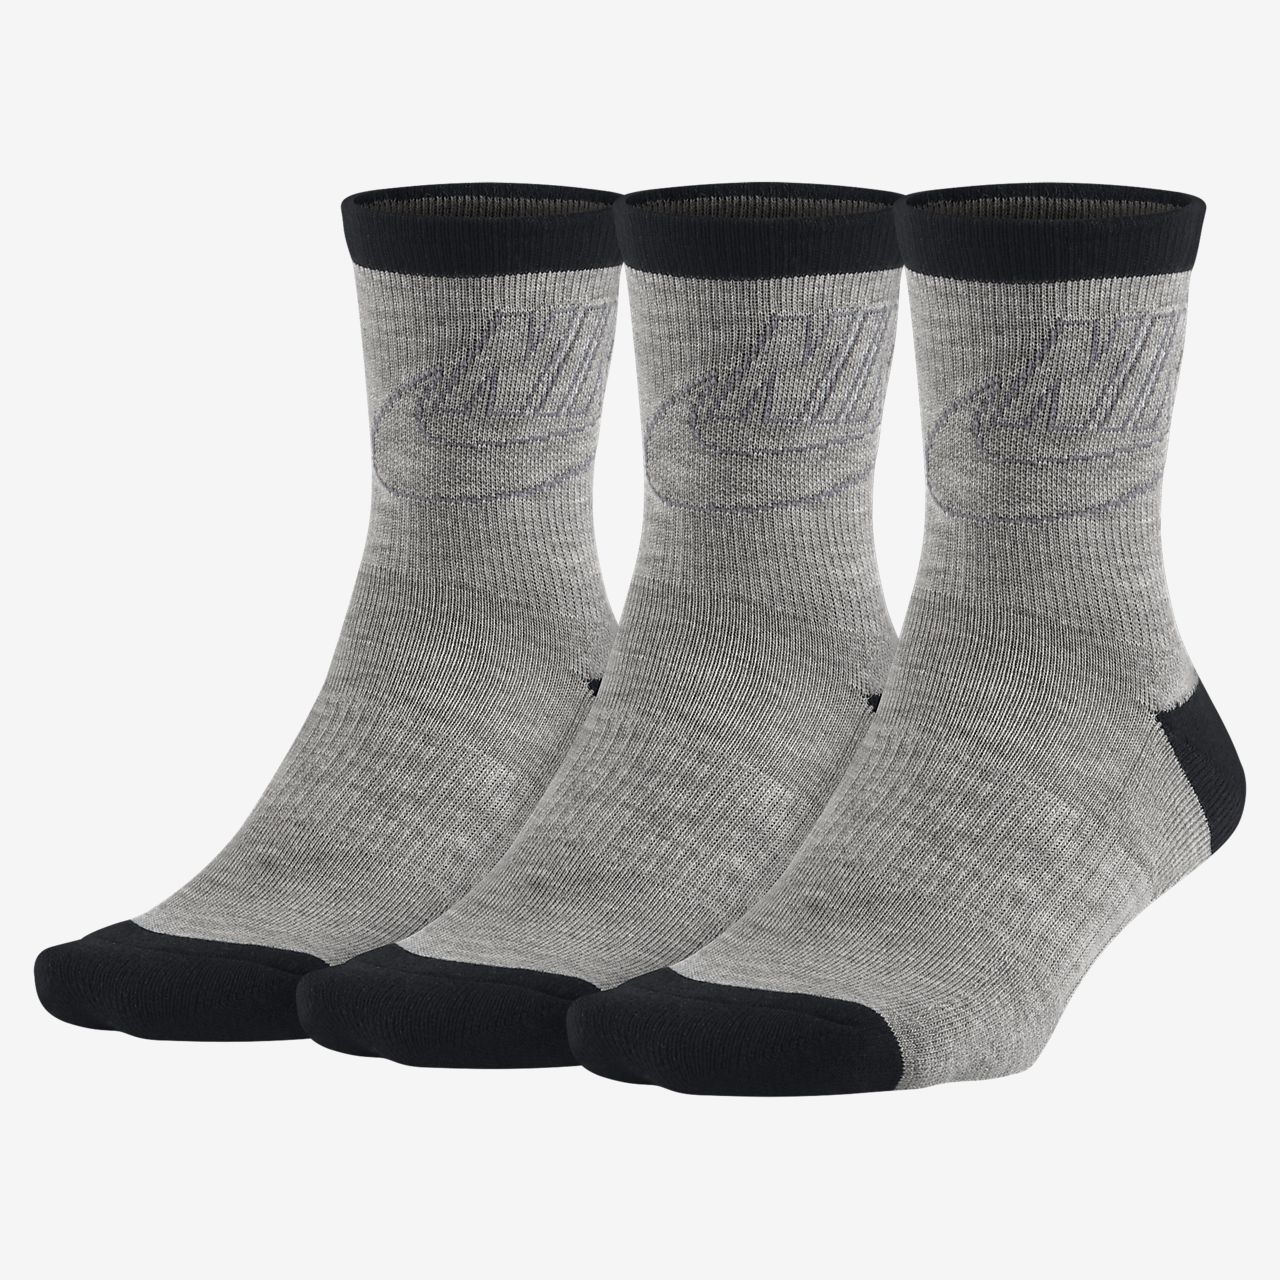 Chaussettes Nike Sportswear Striped Low Crew (3 paires)